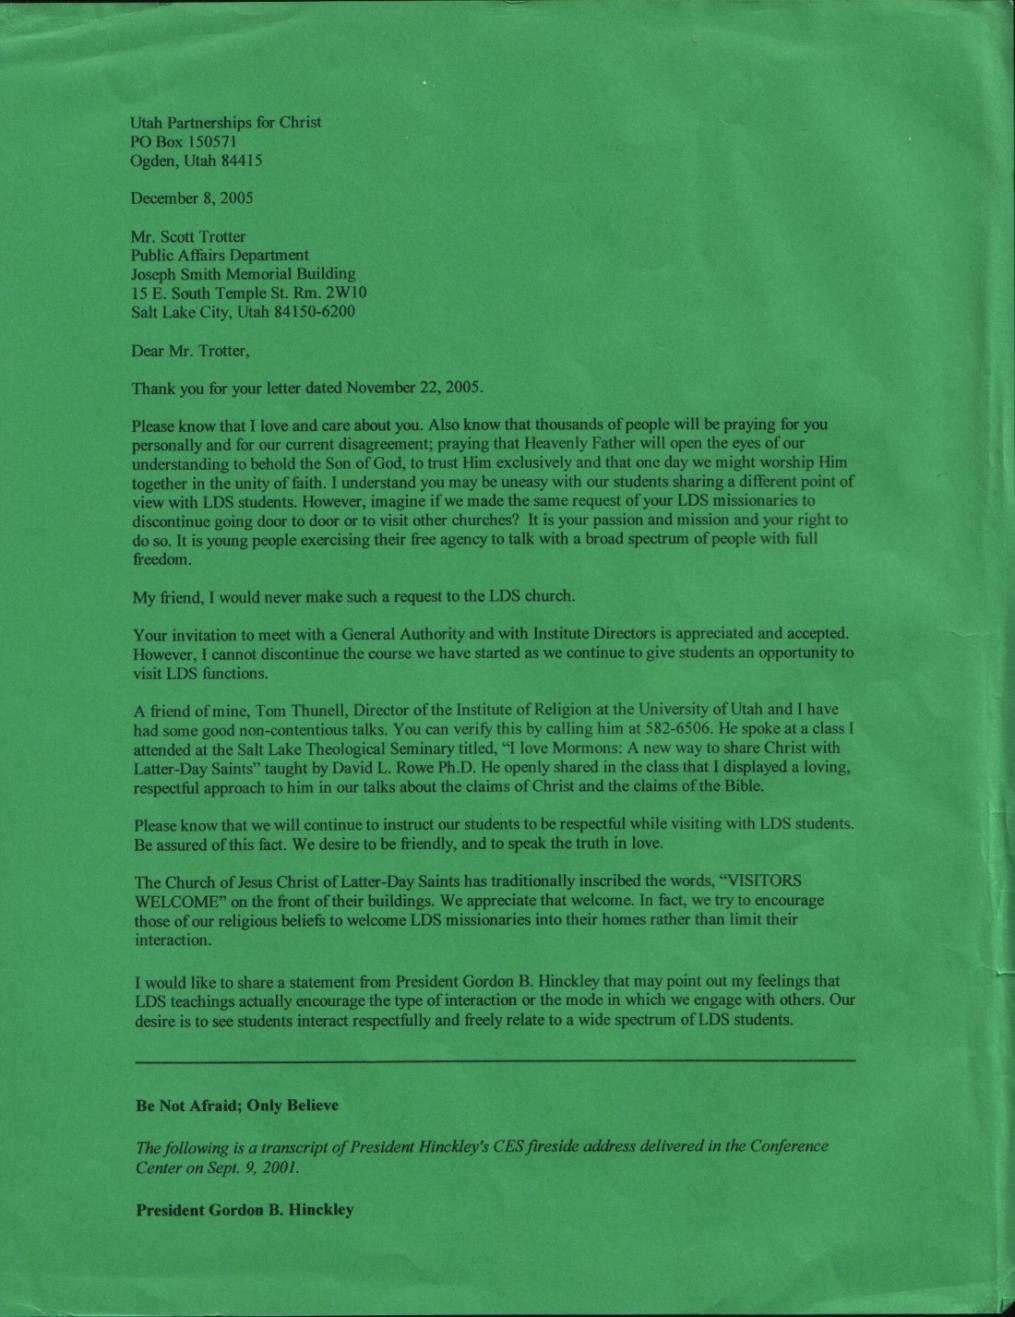 Letter from upfc to lds church 2005